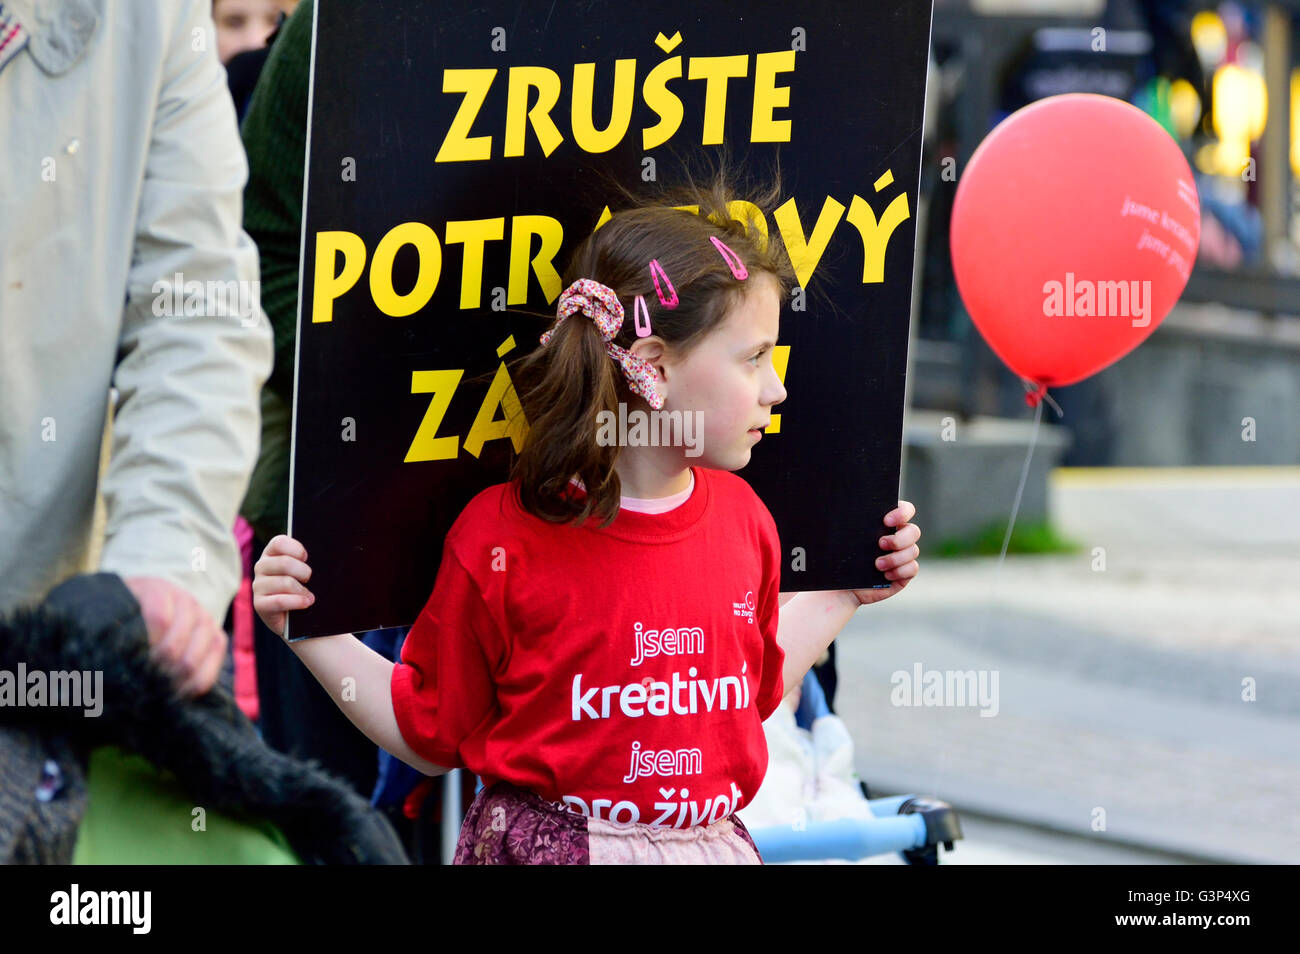 April 2nd, Prague, Czech Republic. Annual National March for Life - pro-life demonstration against abortion,organized - Stock Image